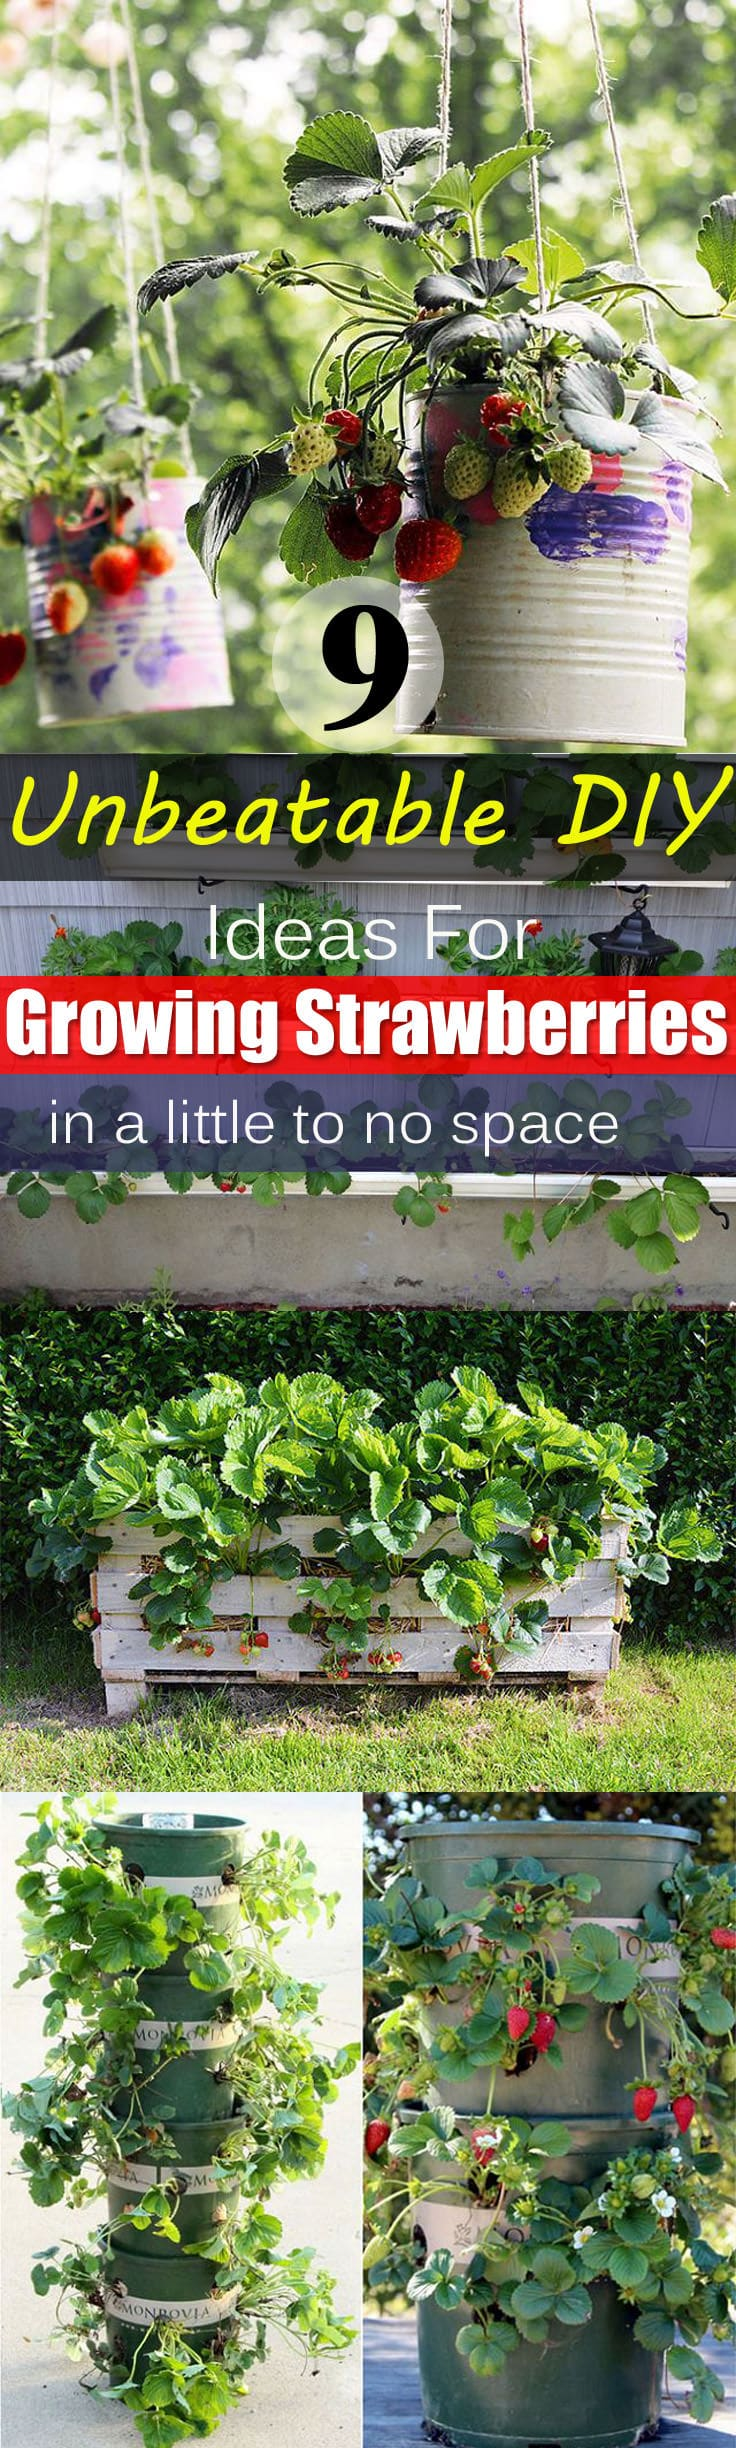 Vertical beds for strawberries from plastic bottles. Handmade high beds for strawberries 71